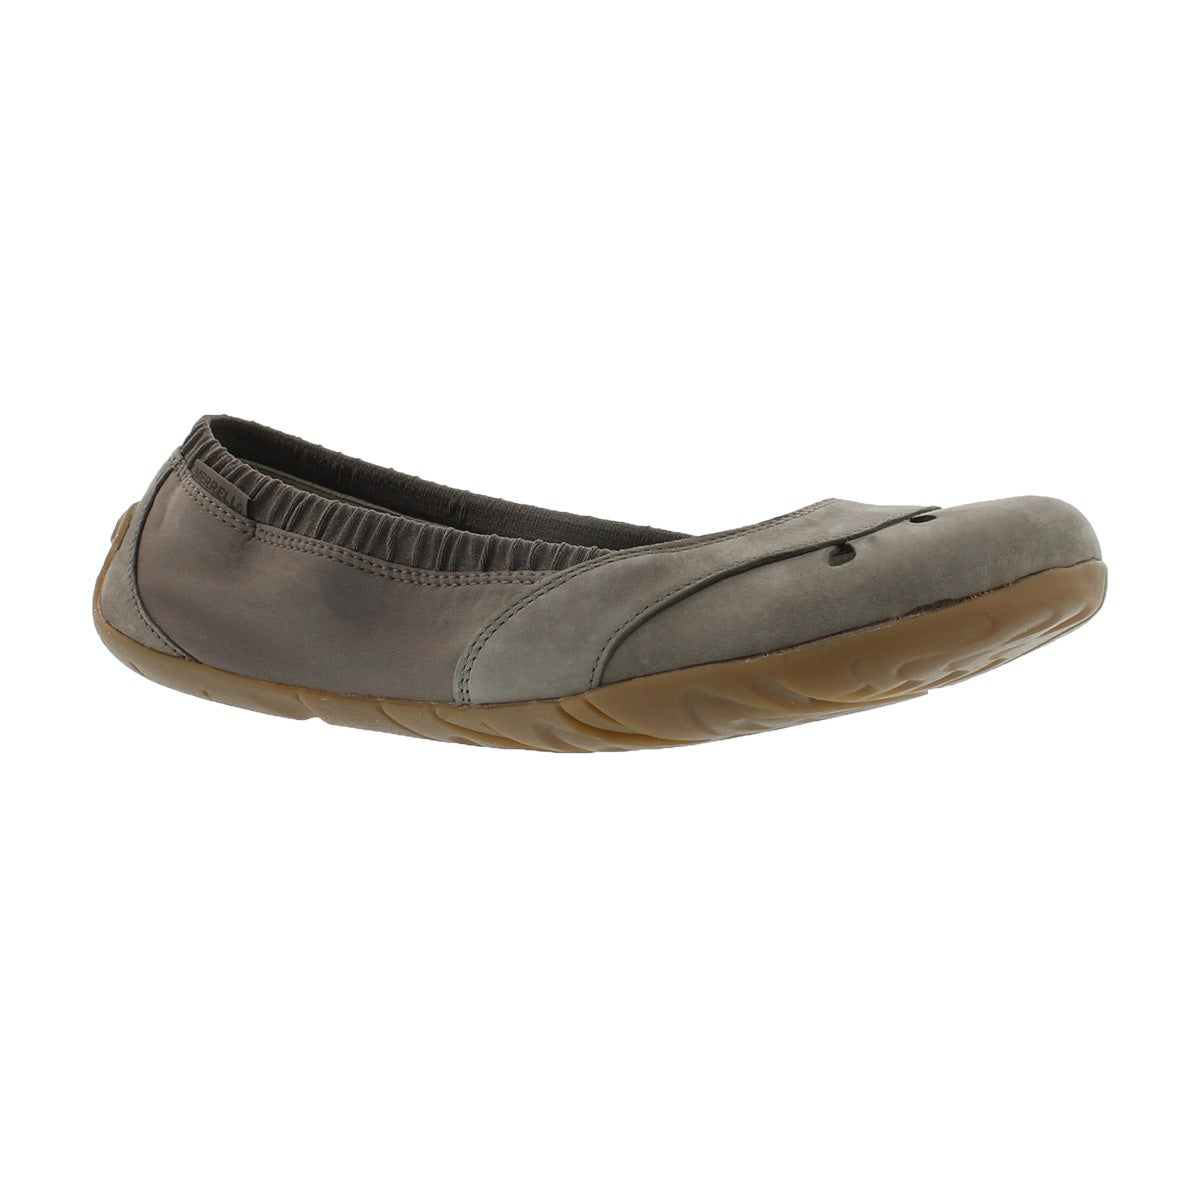 Lds Whirl Glove falcon slip on shoe